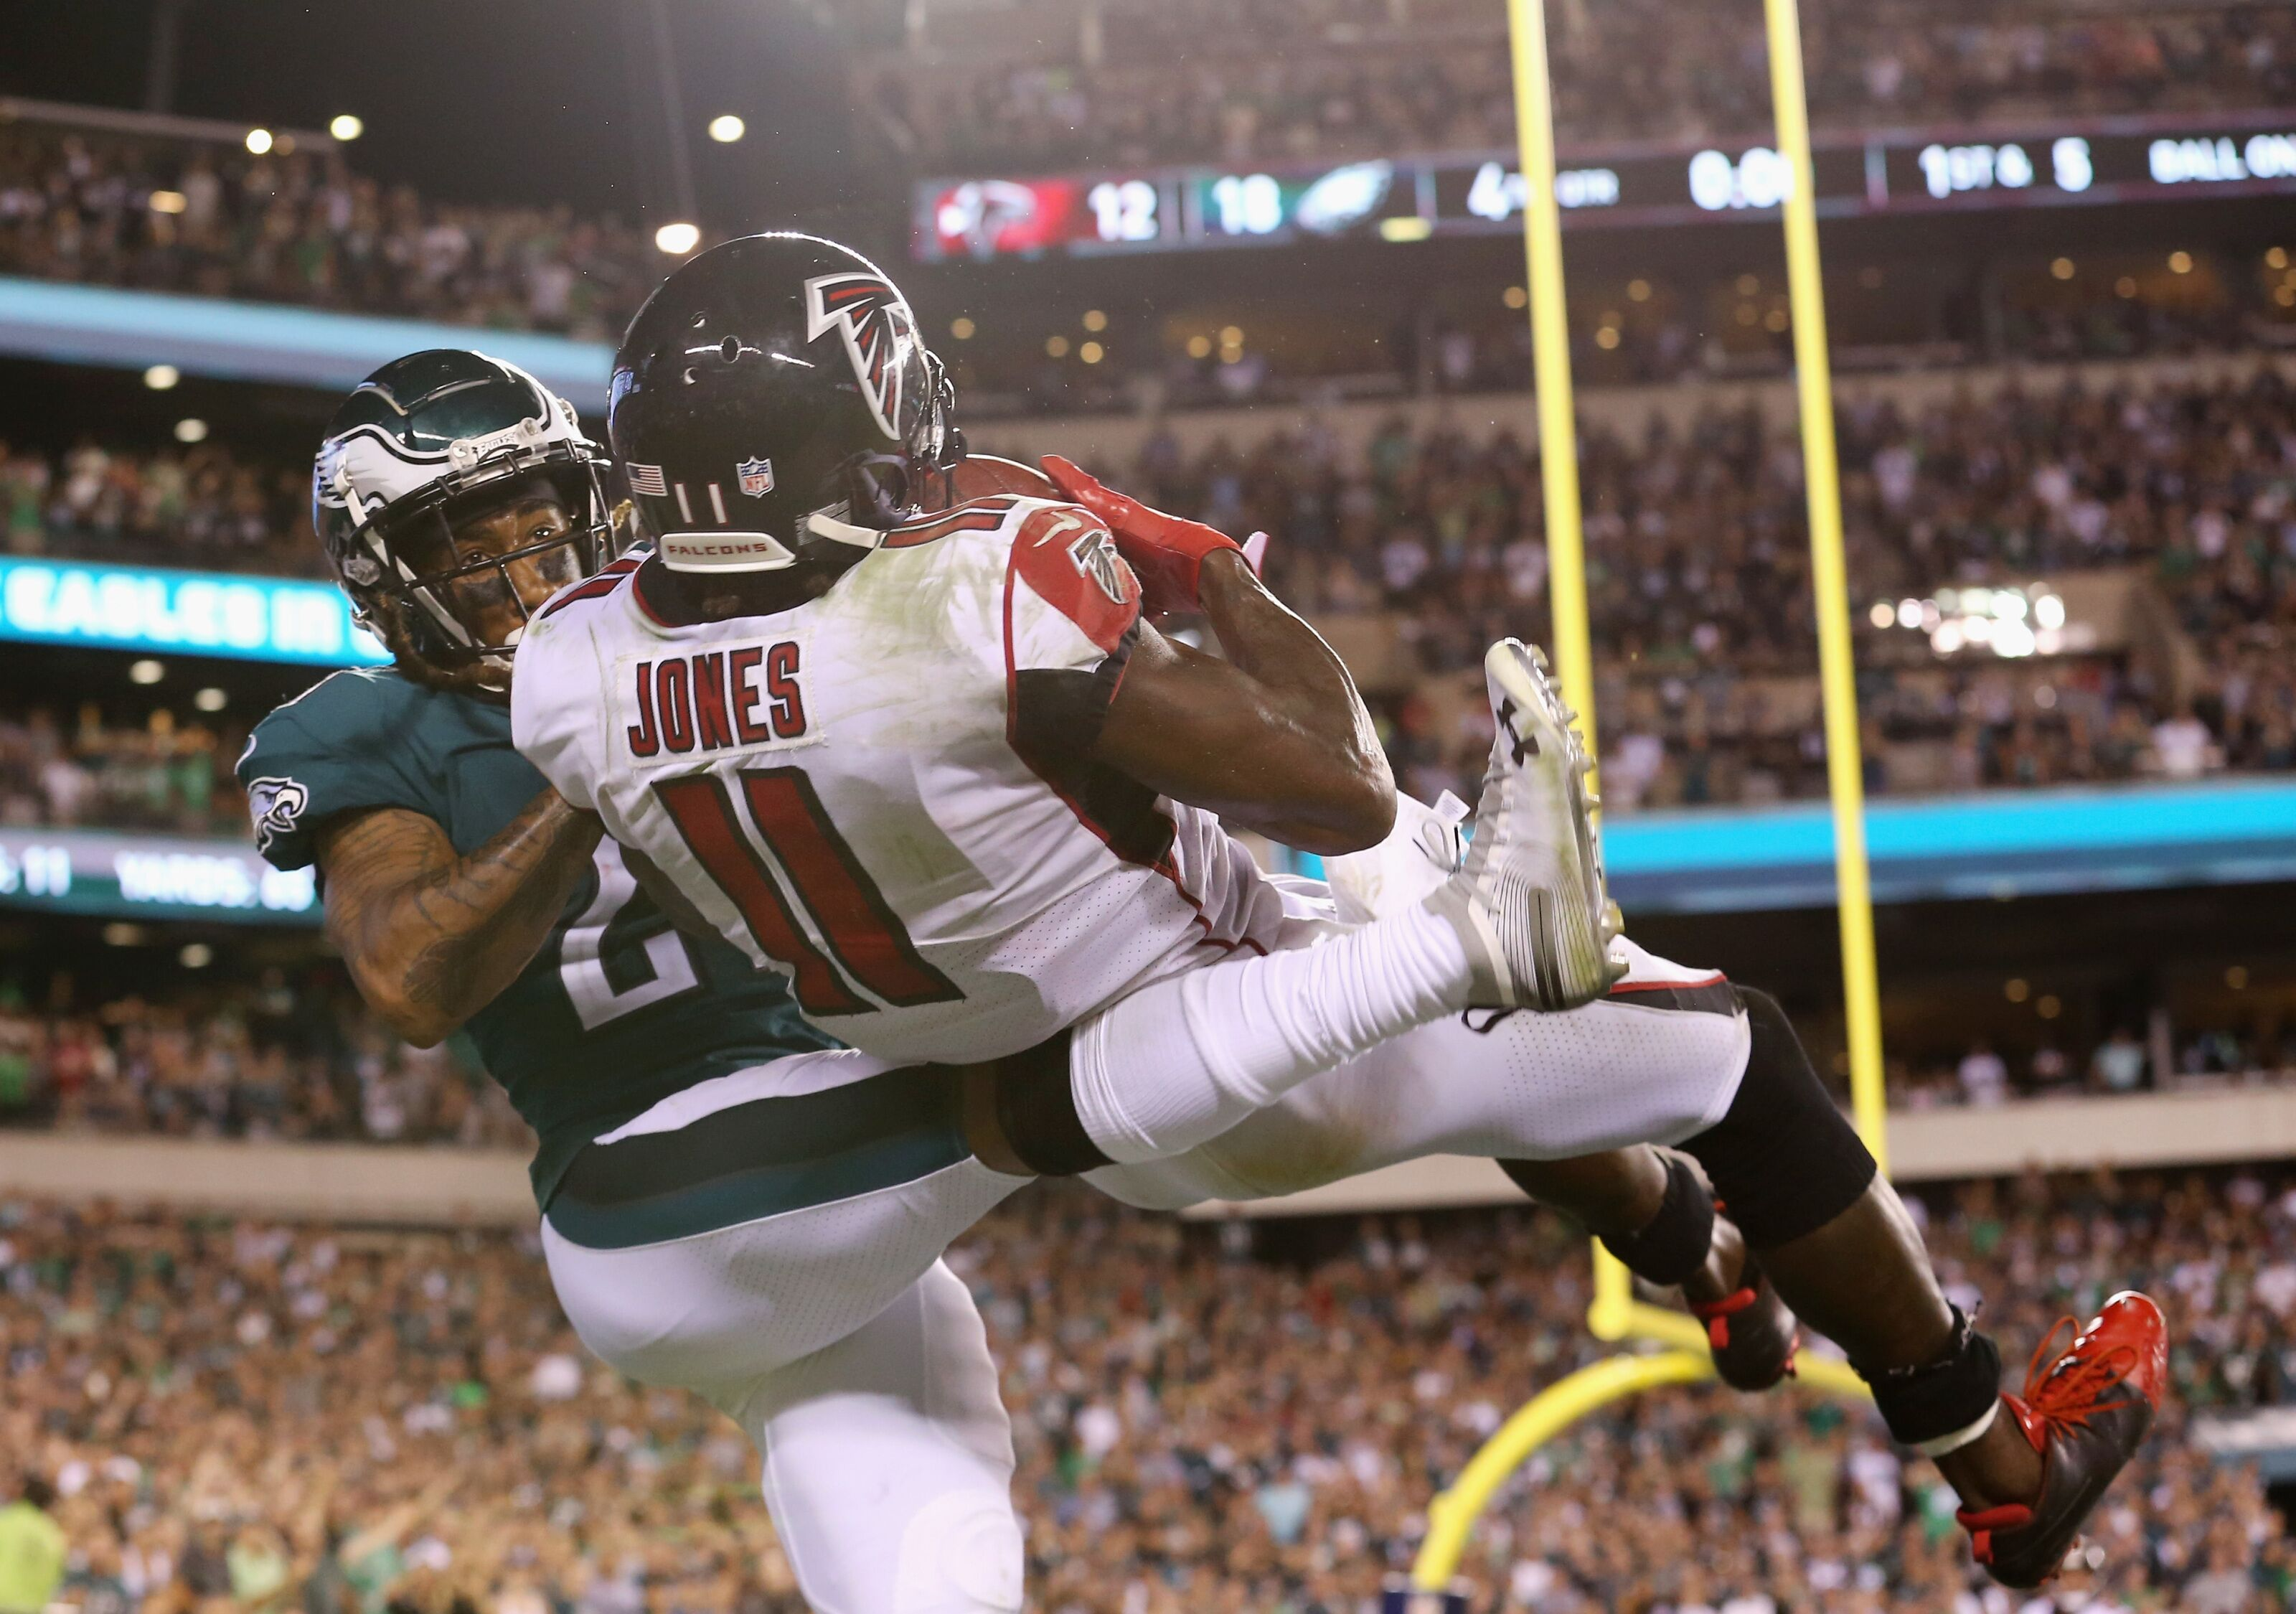 Atlanta Falcons: Is Julio Jones becoming an all-time great wide receiver?